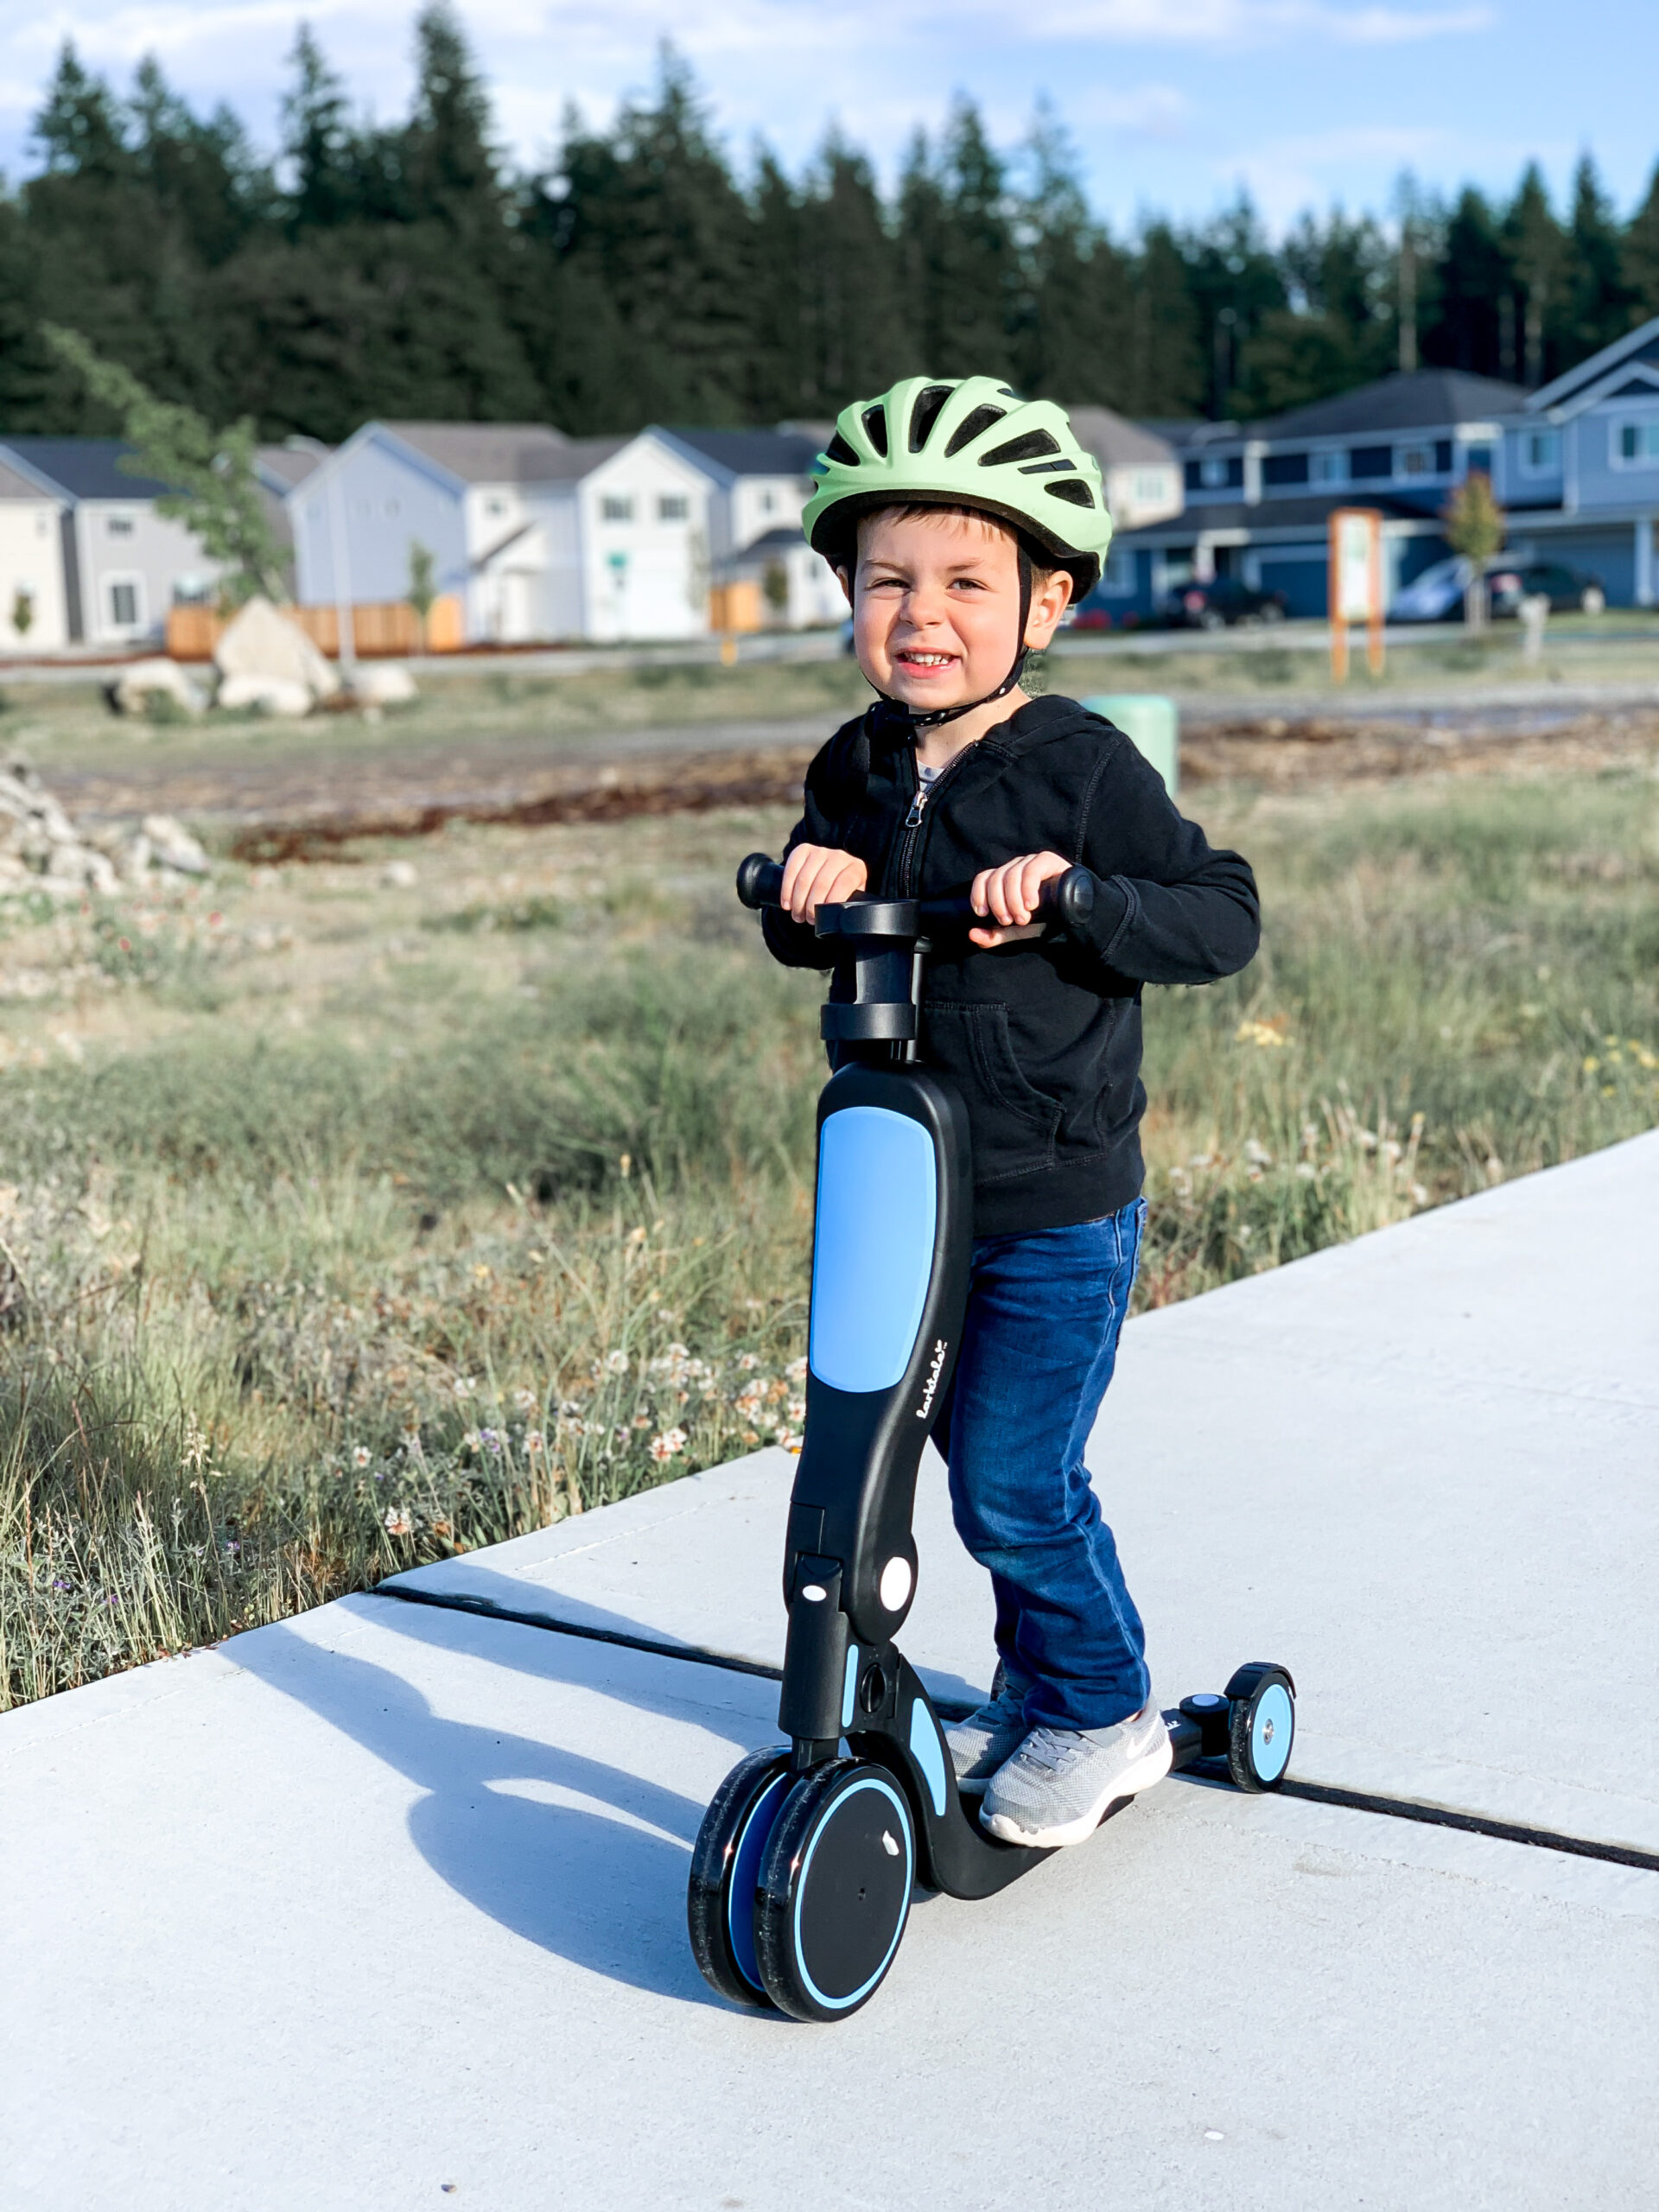 little boy on blue and black scooter